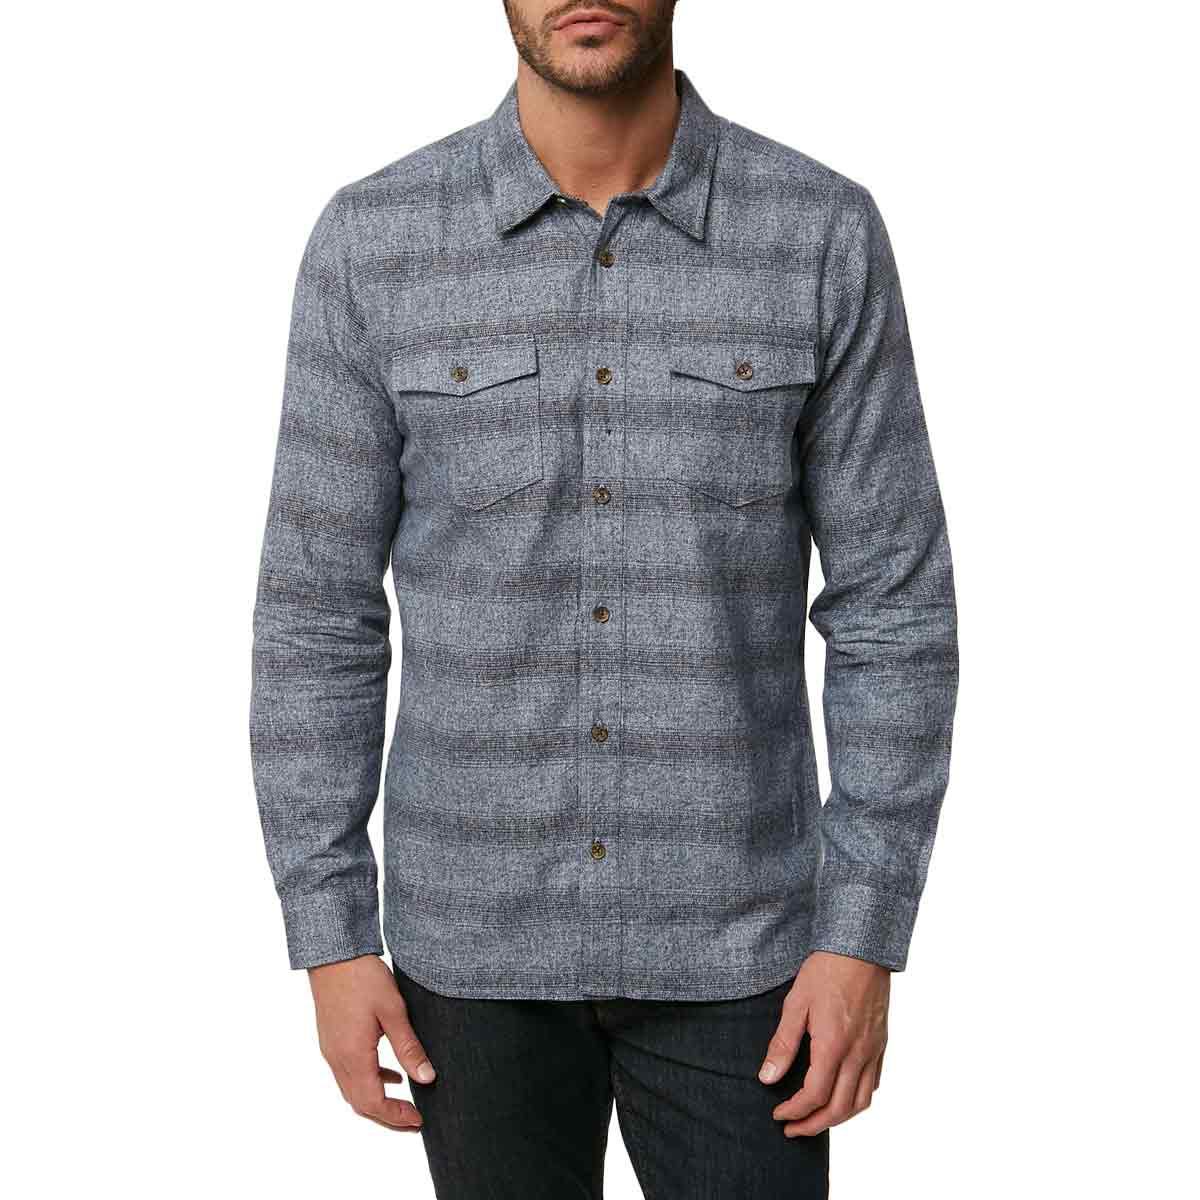 O'neill Guys' Covington Long-Sleeve Flannel Shirt - Blue, L